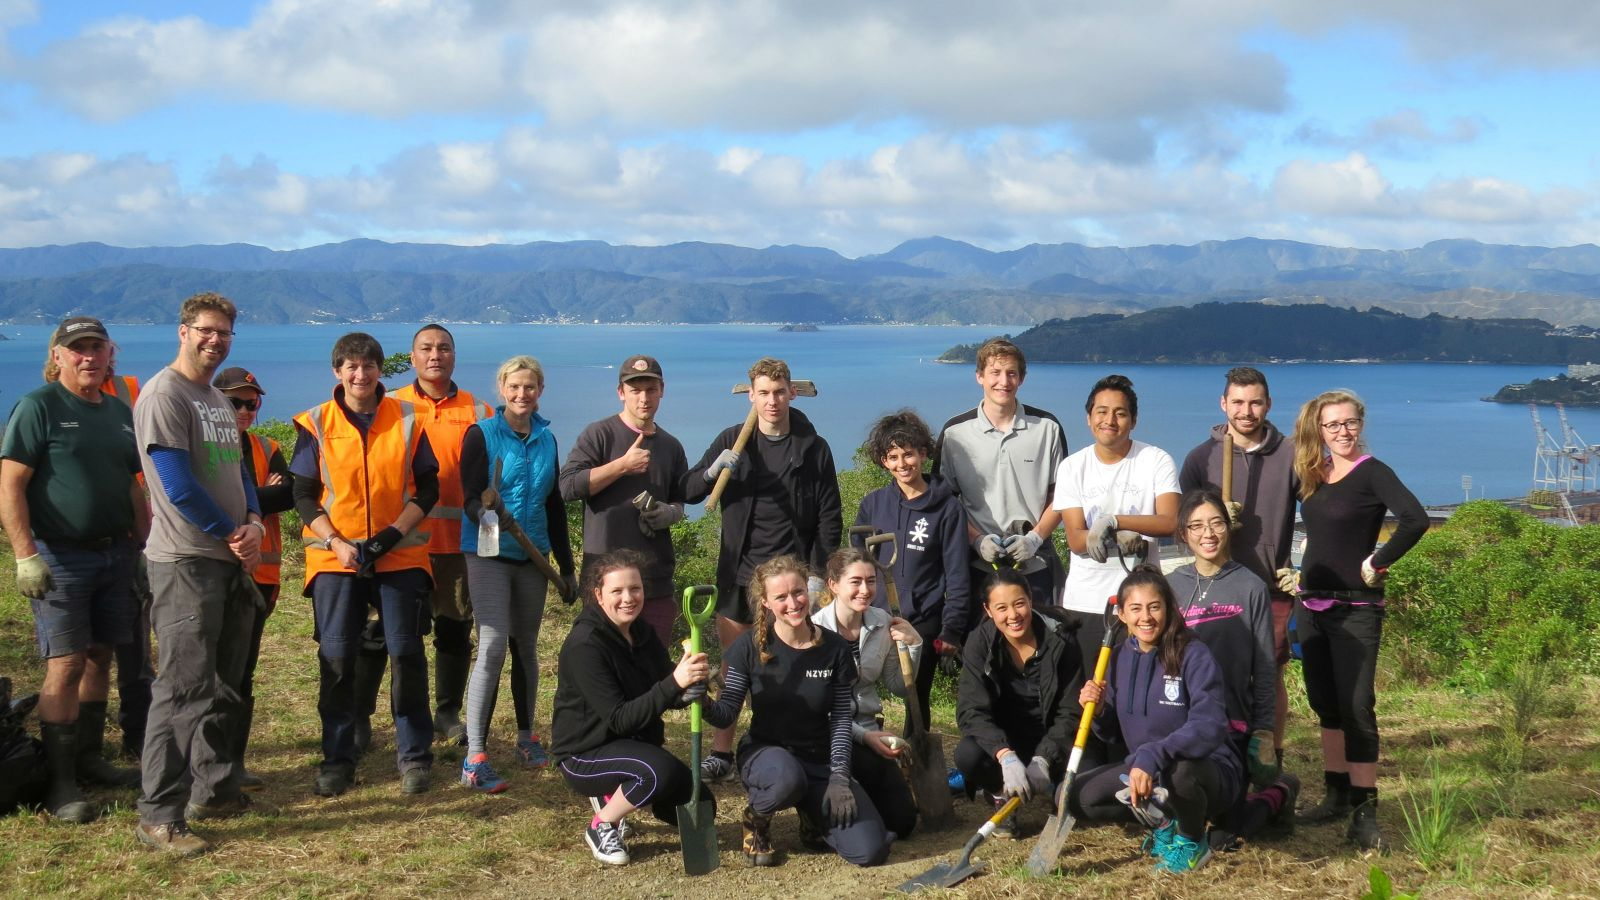 A group of student volunteers, hold landscaping tools while posing together on a hill with the ocean in the background.